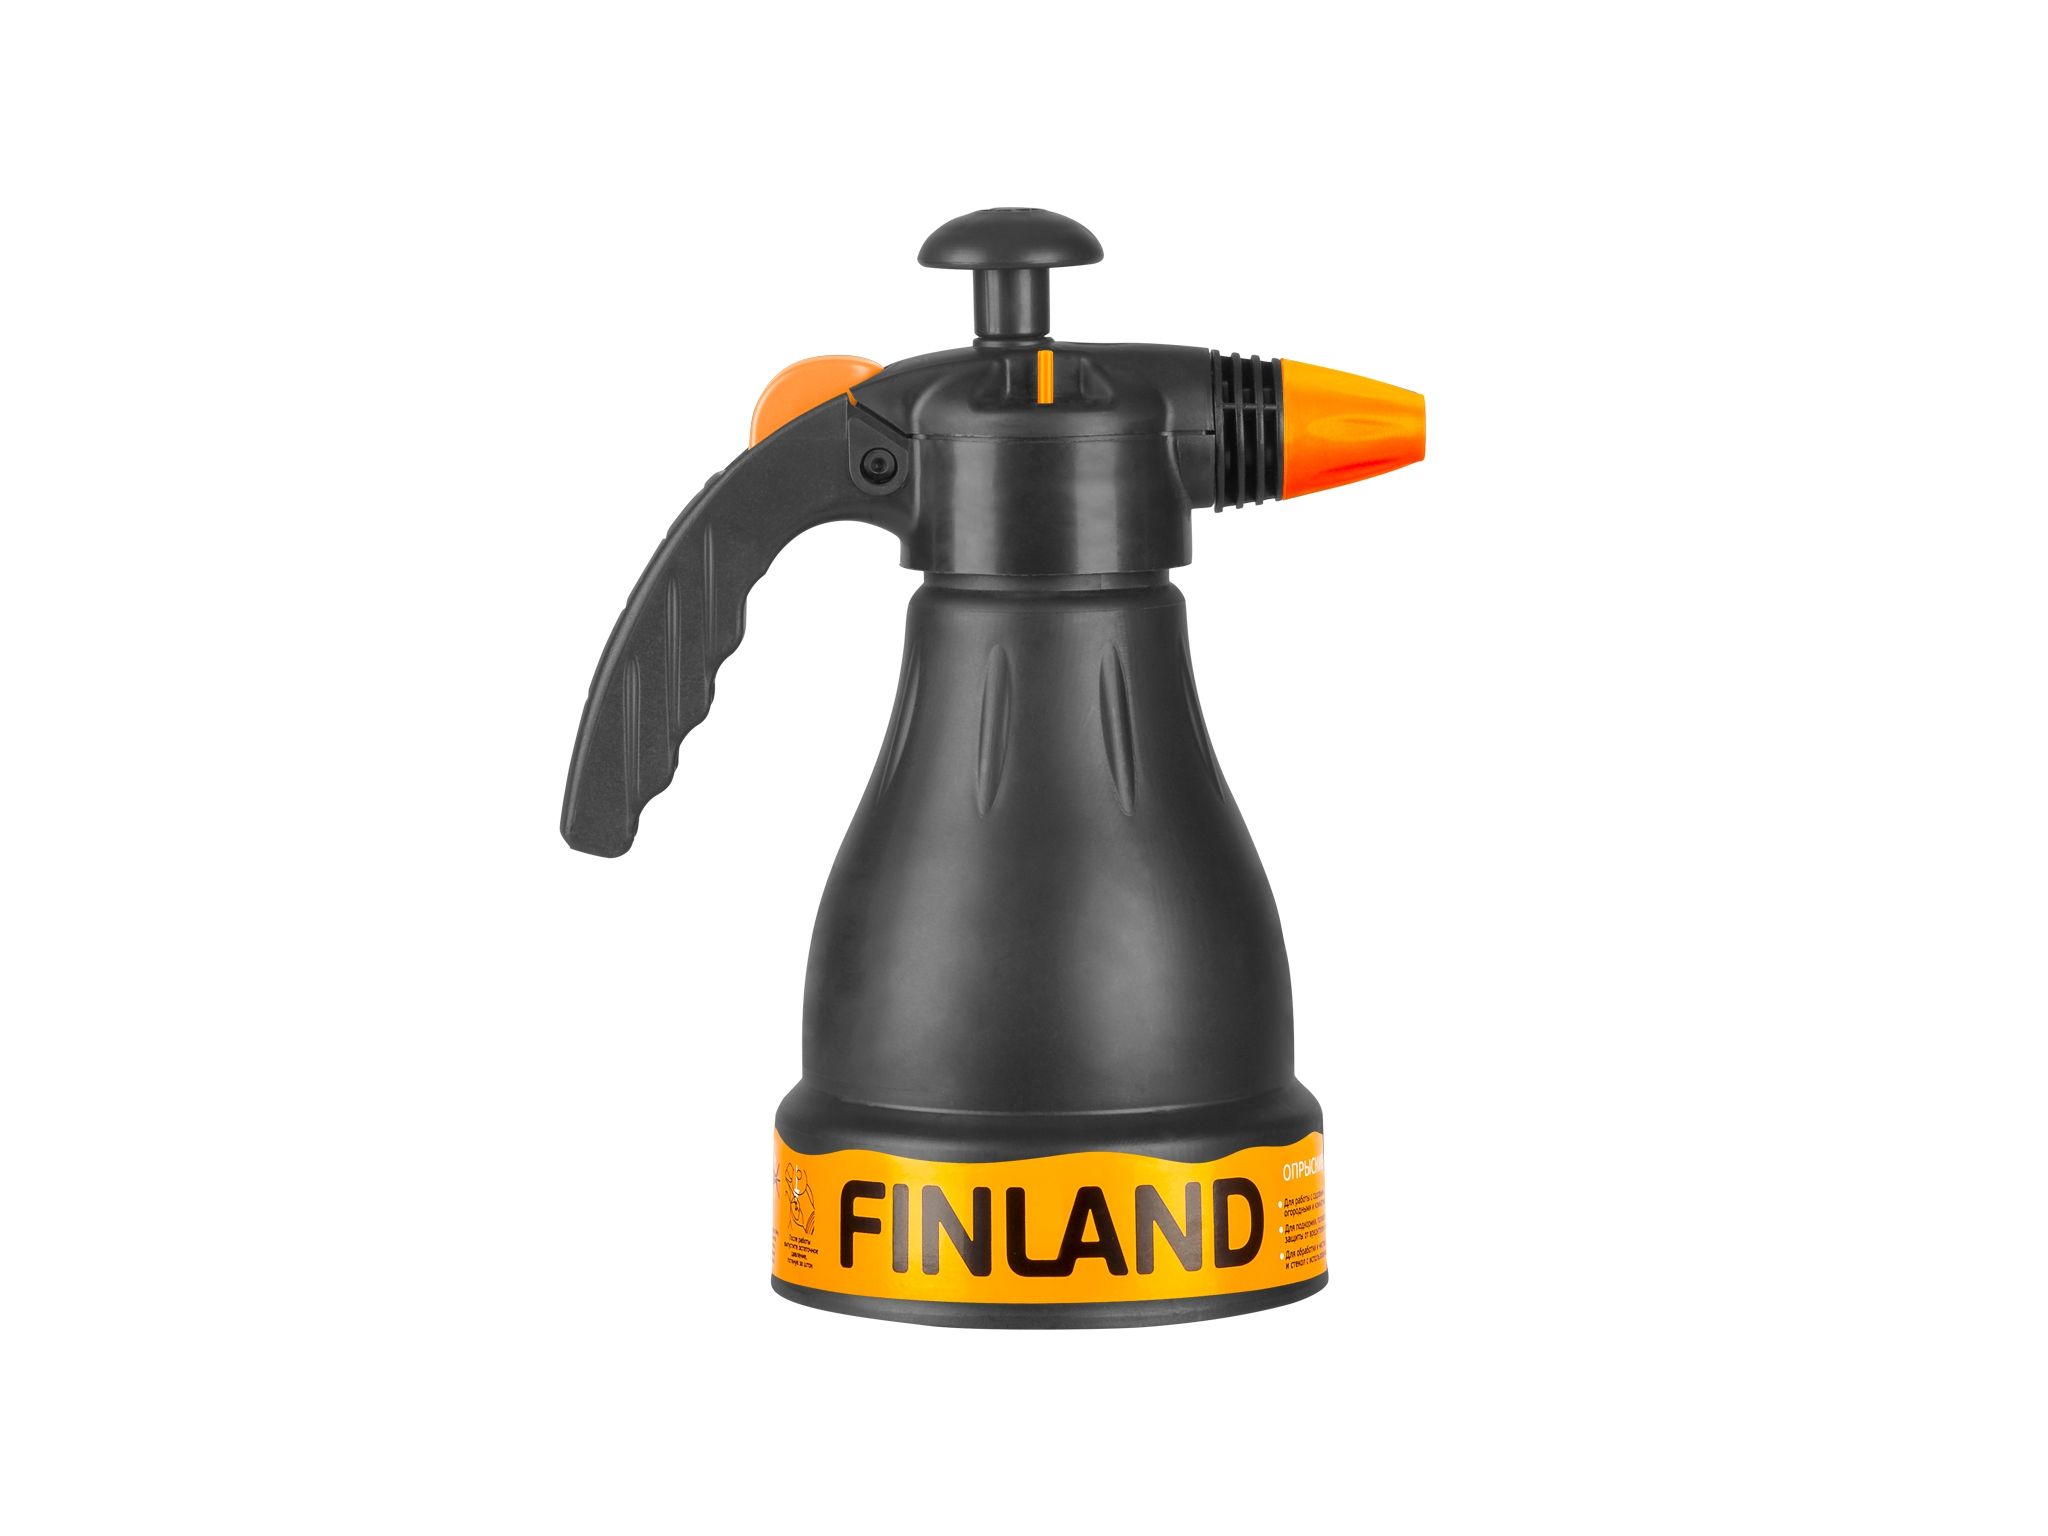 Finland_aiaprits